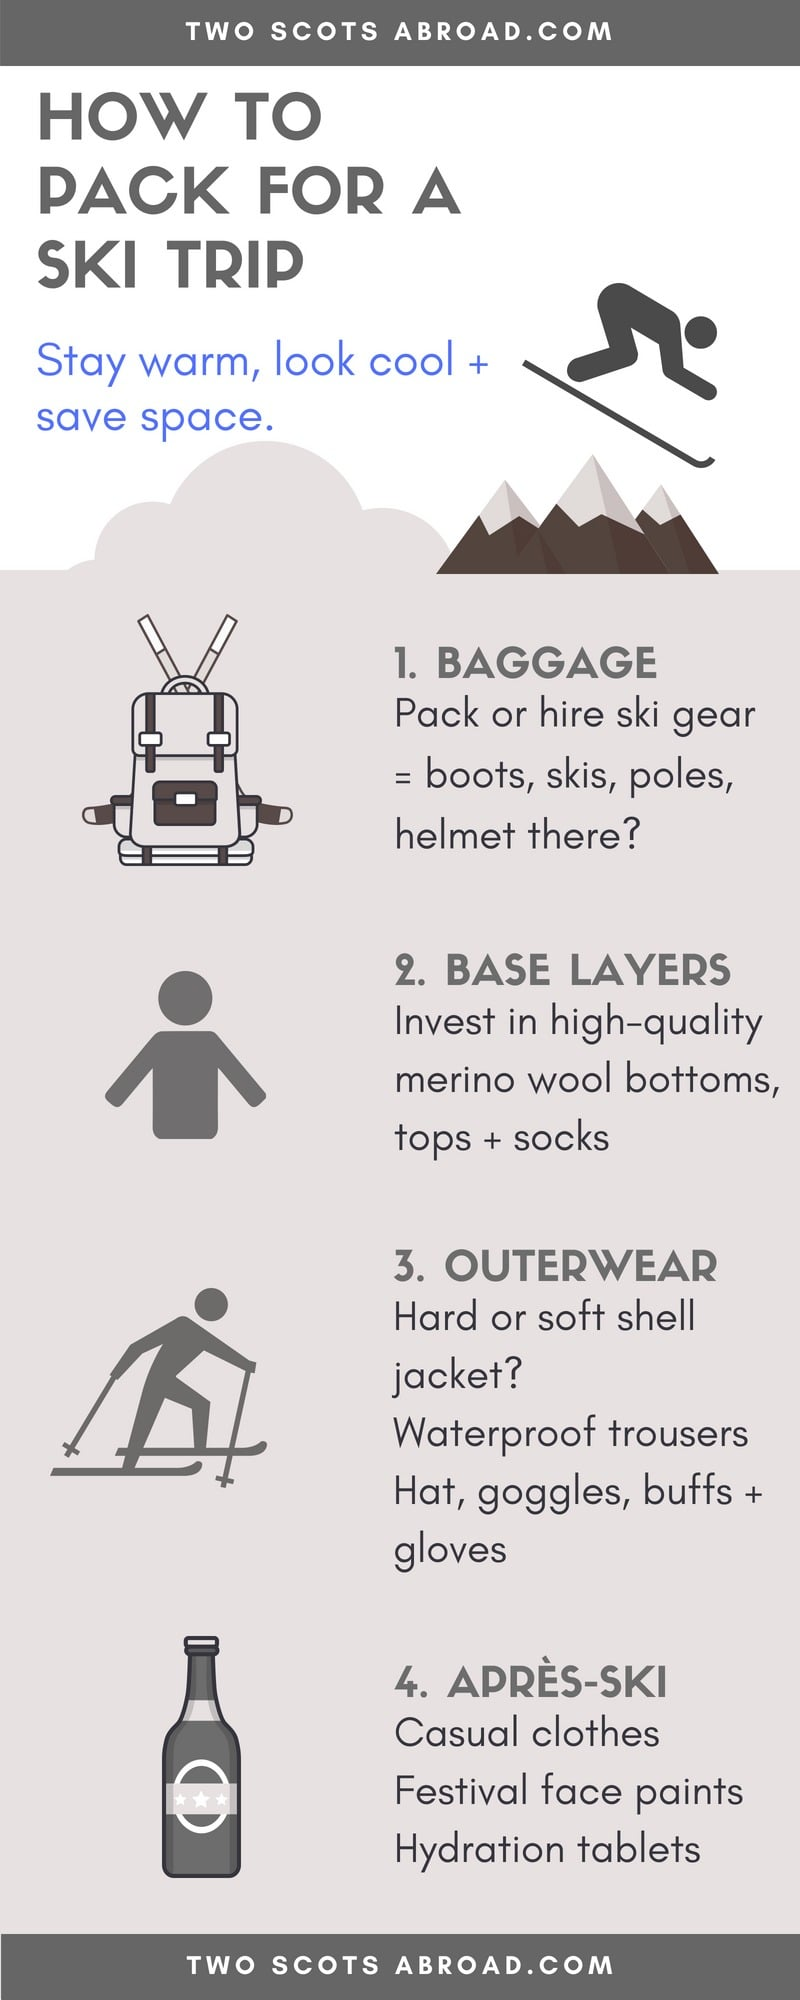 How to pack for a ski trip - Ski packing list